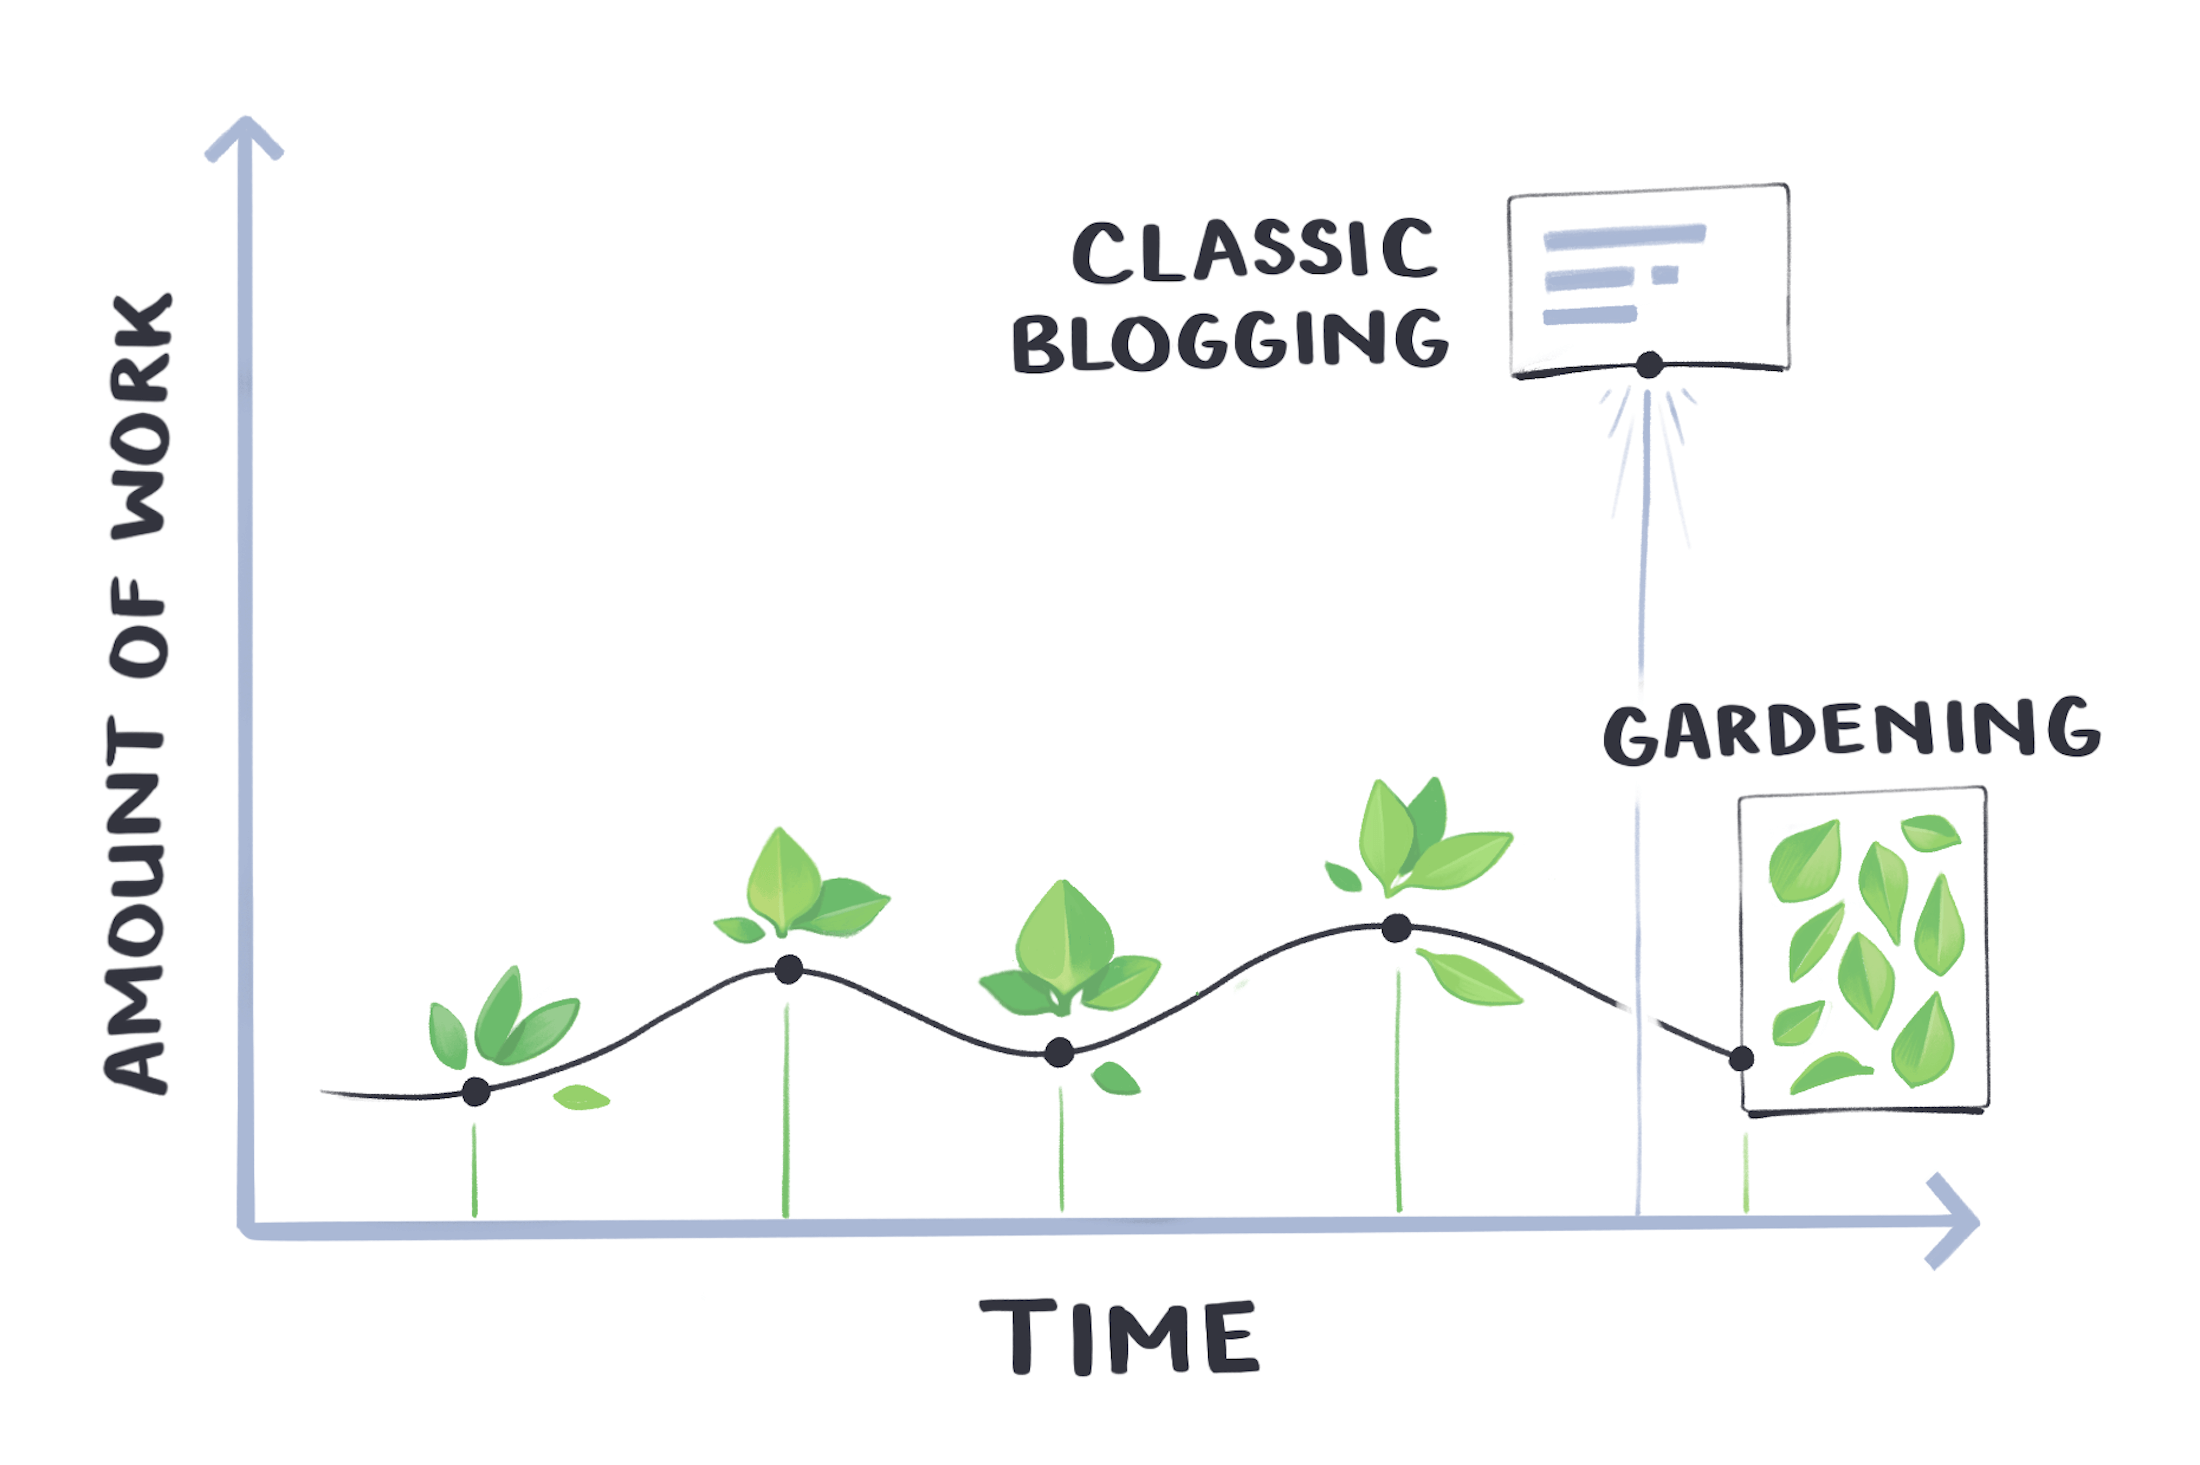 A graph of time versus amount of work. Gardening involves small amounts of work over time, while classic blogging involves a lot of work all at once.